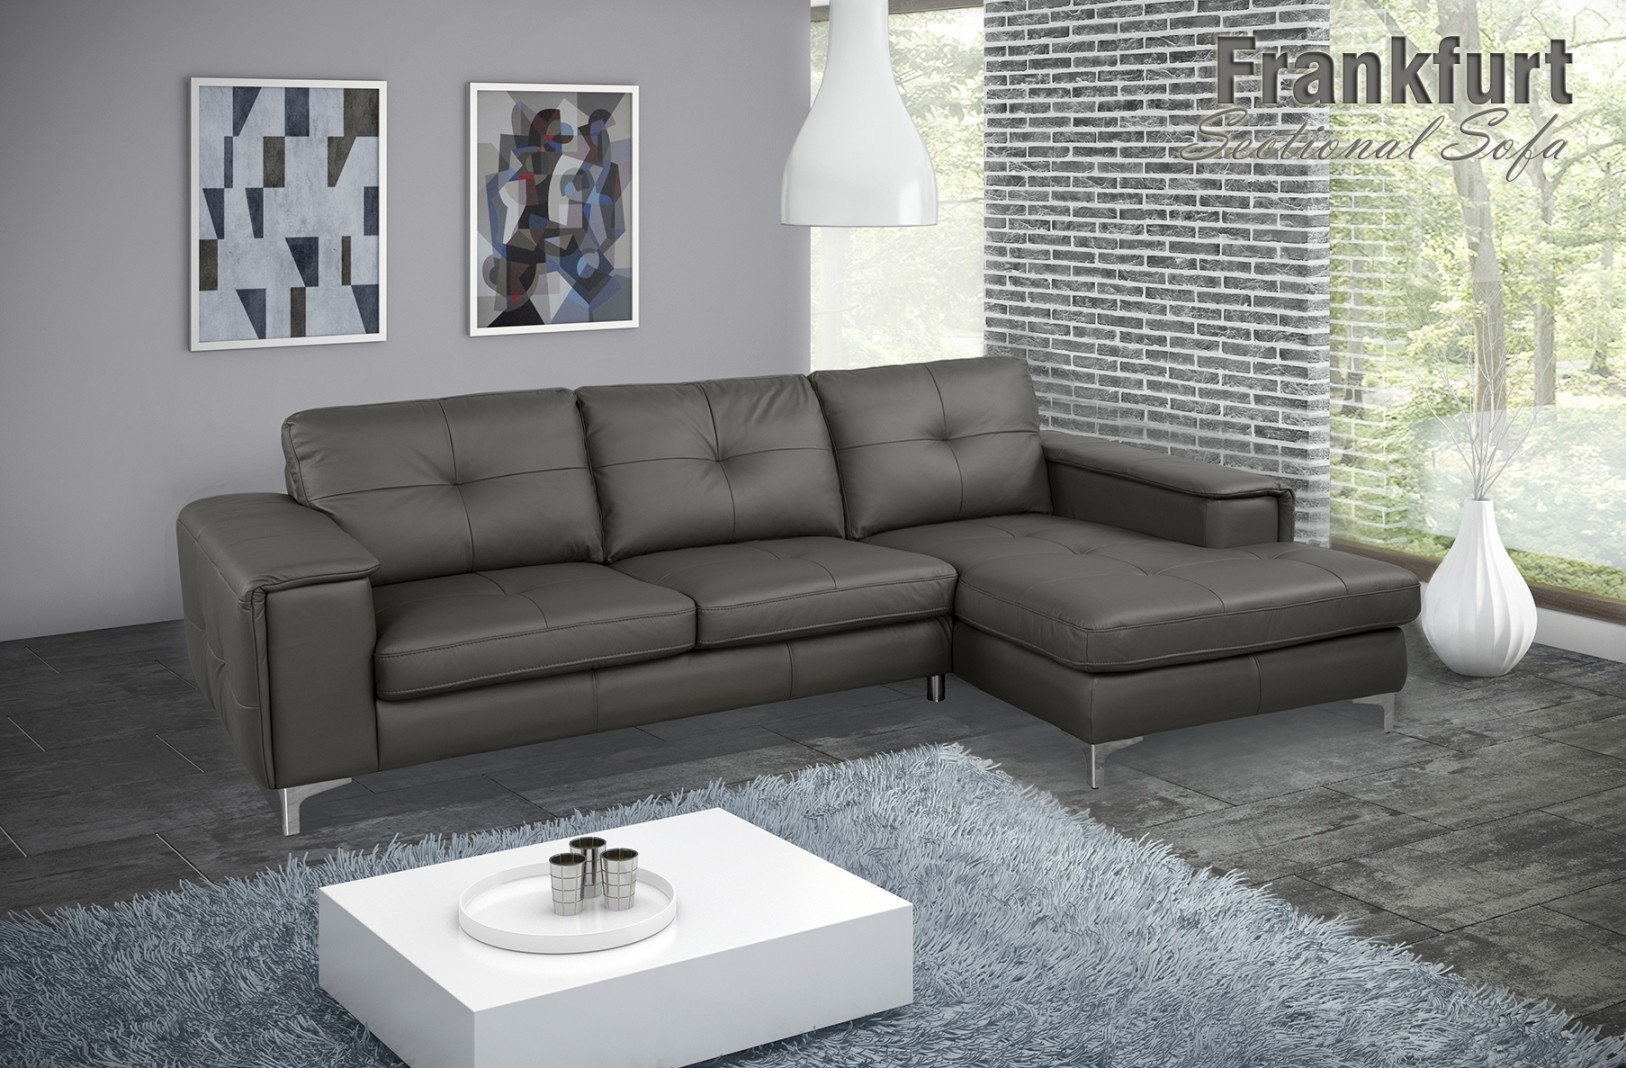 Sofa Frankfurt Frankfurt Sectional Nordholtz Furniture